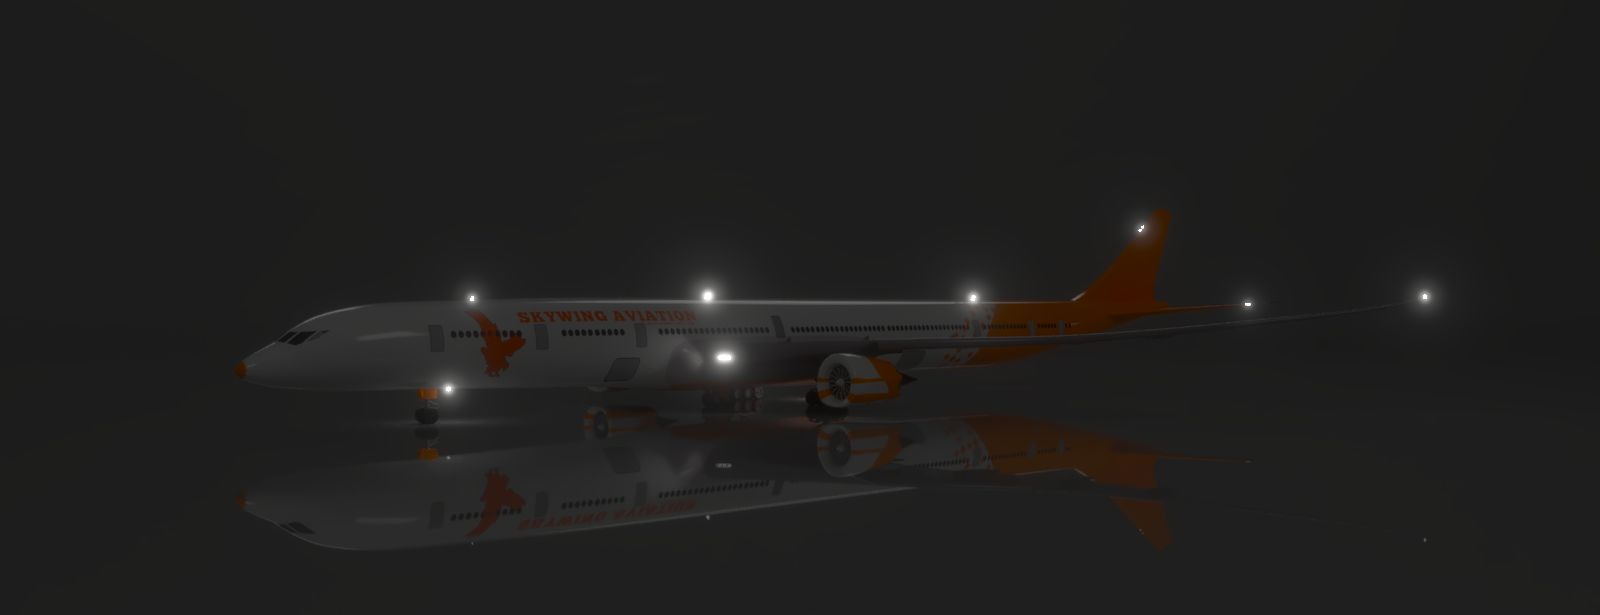 Aircraft-1-2017-oct-12-08-47-44am-000-customizedview24481149144-png-3500-3500